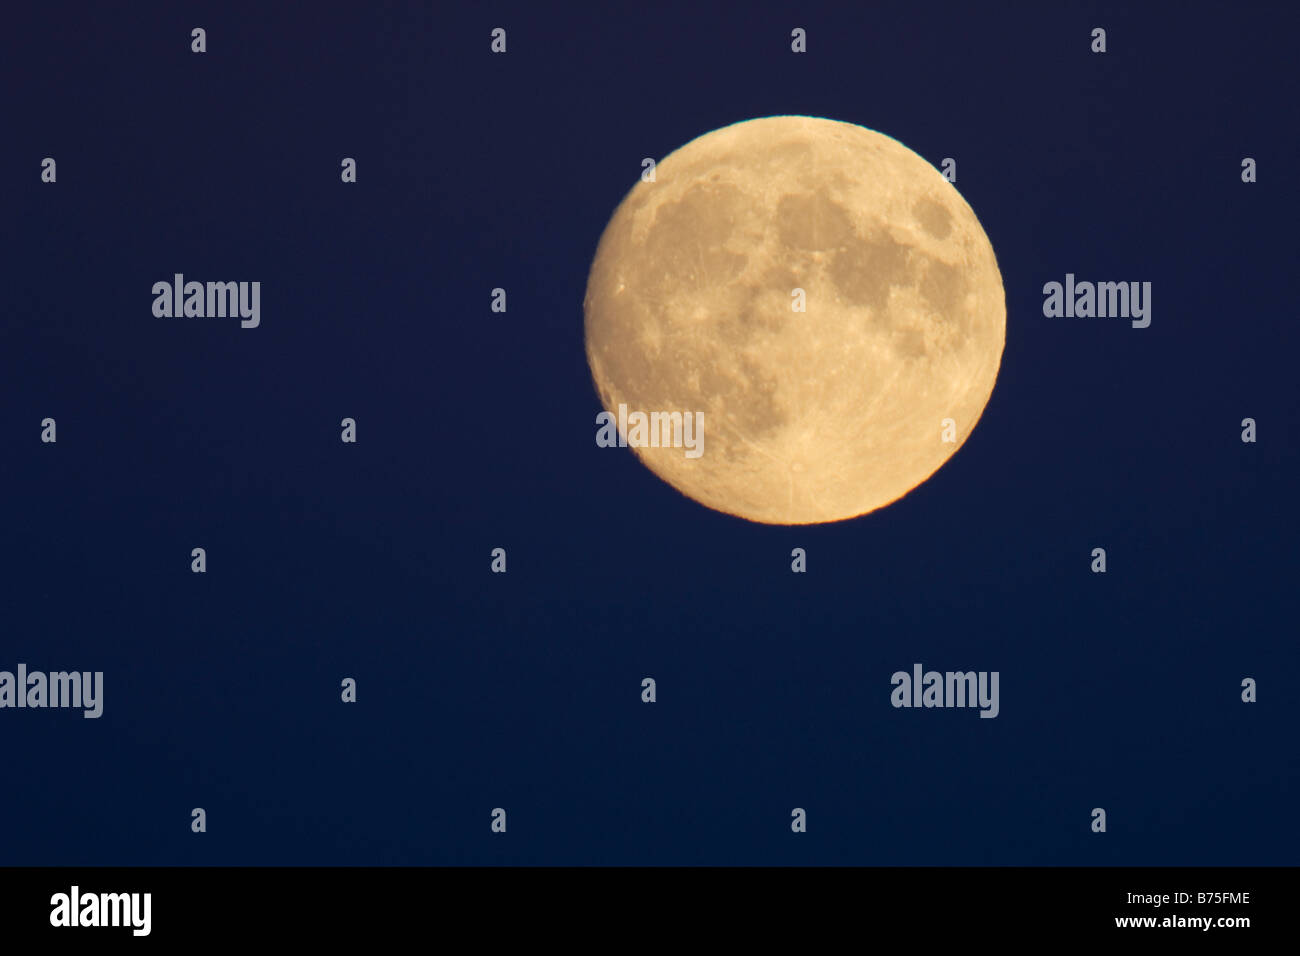 rising full moon - Stock Image